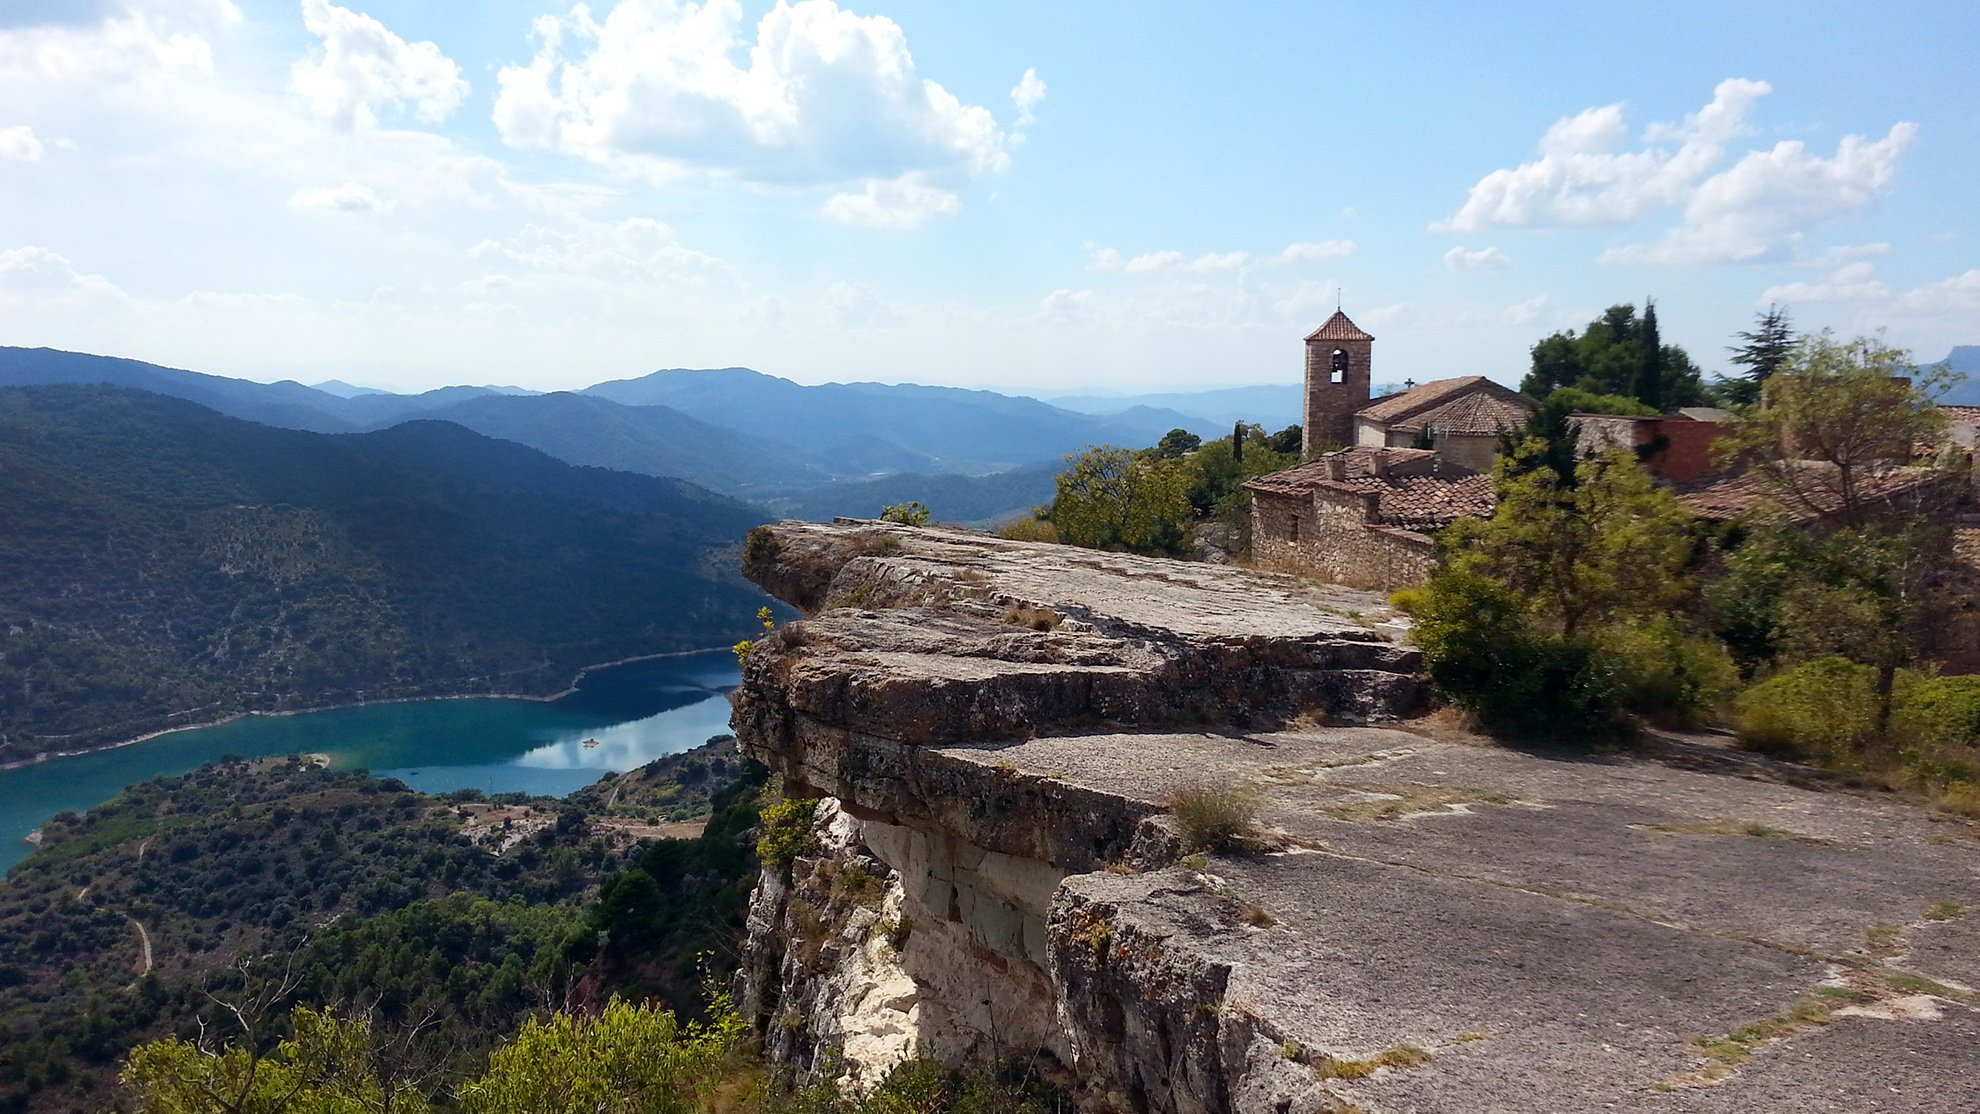 Siurana with a spectacular view